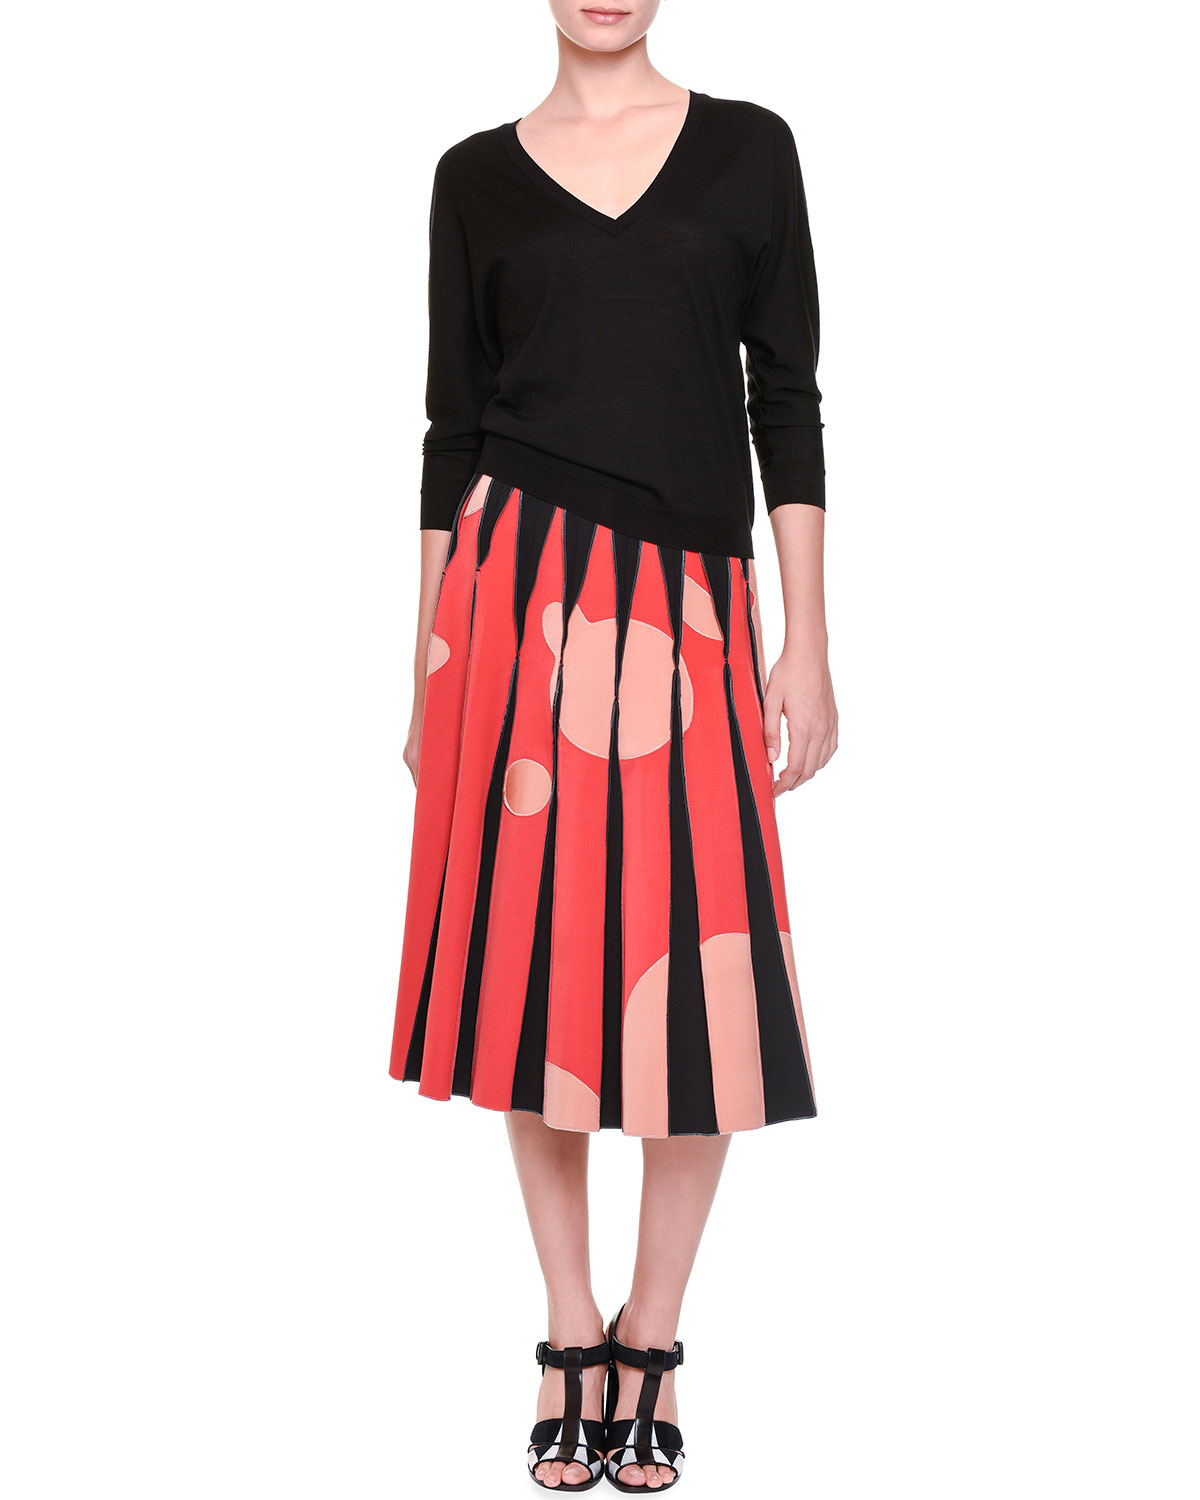 dea3b3e96e43 Bottega veneta Inverted-pleat Bubble-print Midi Skirt in .